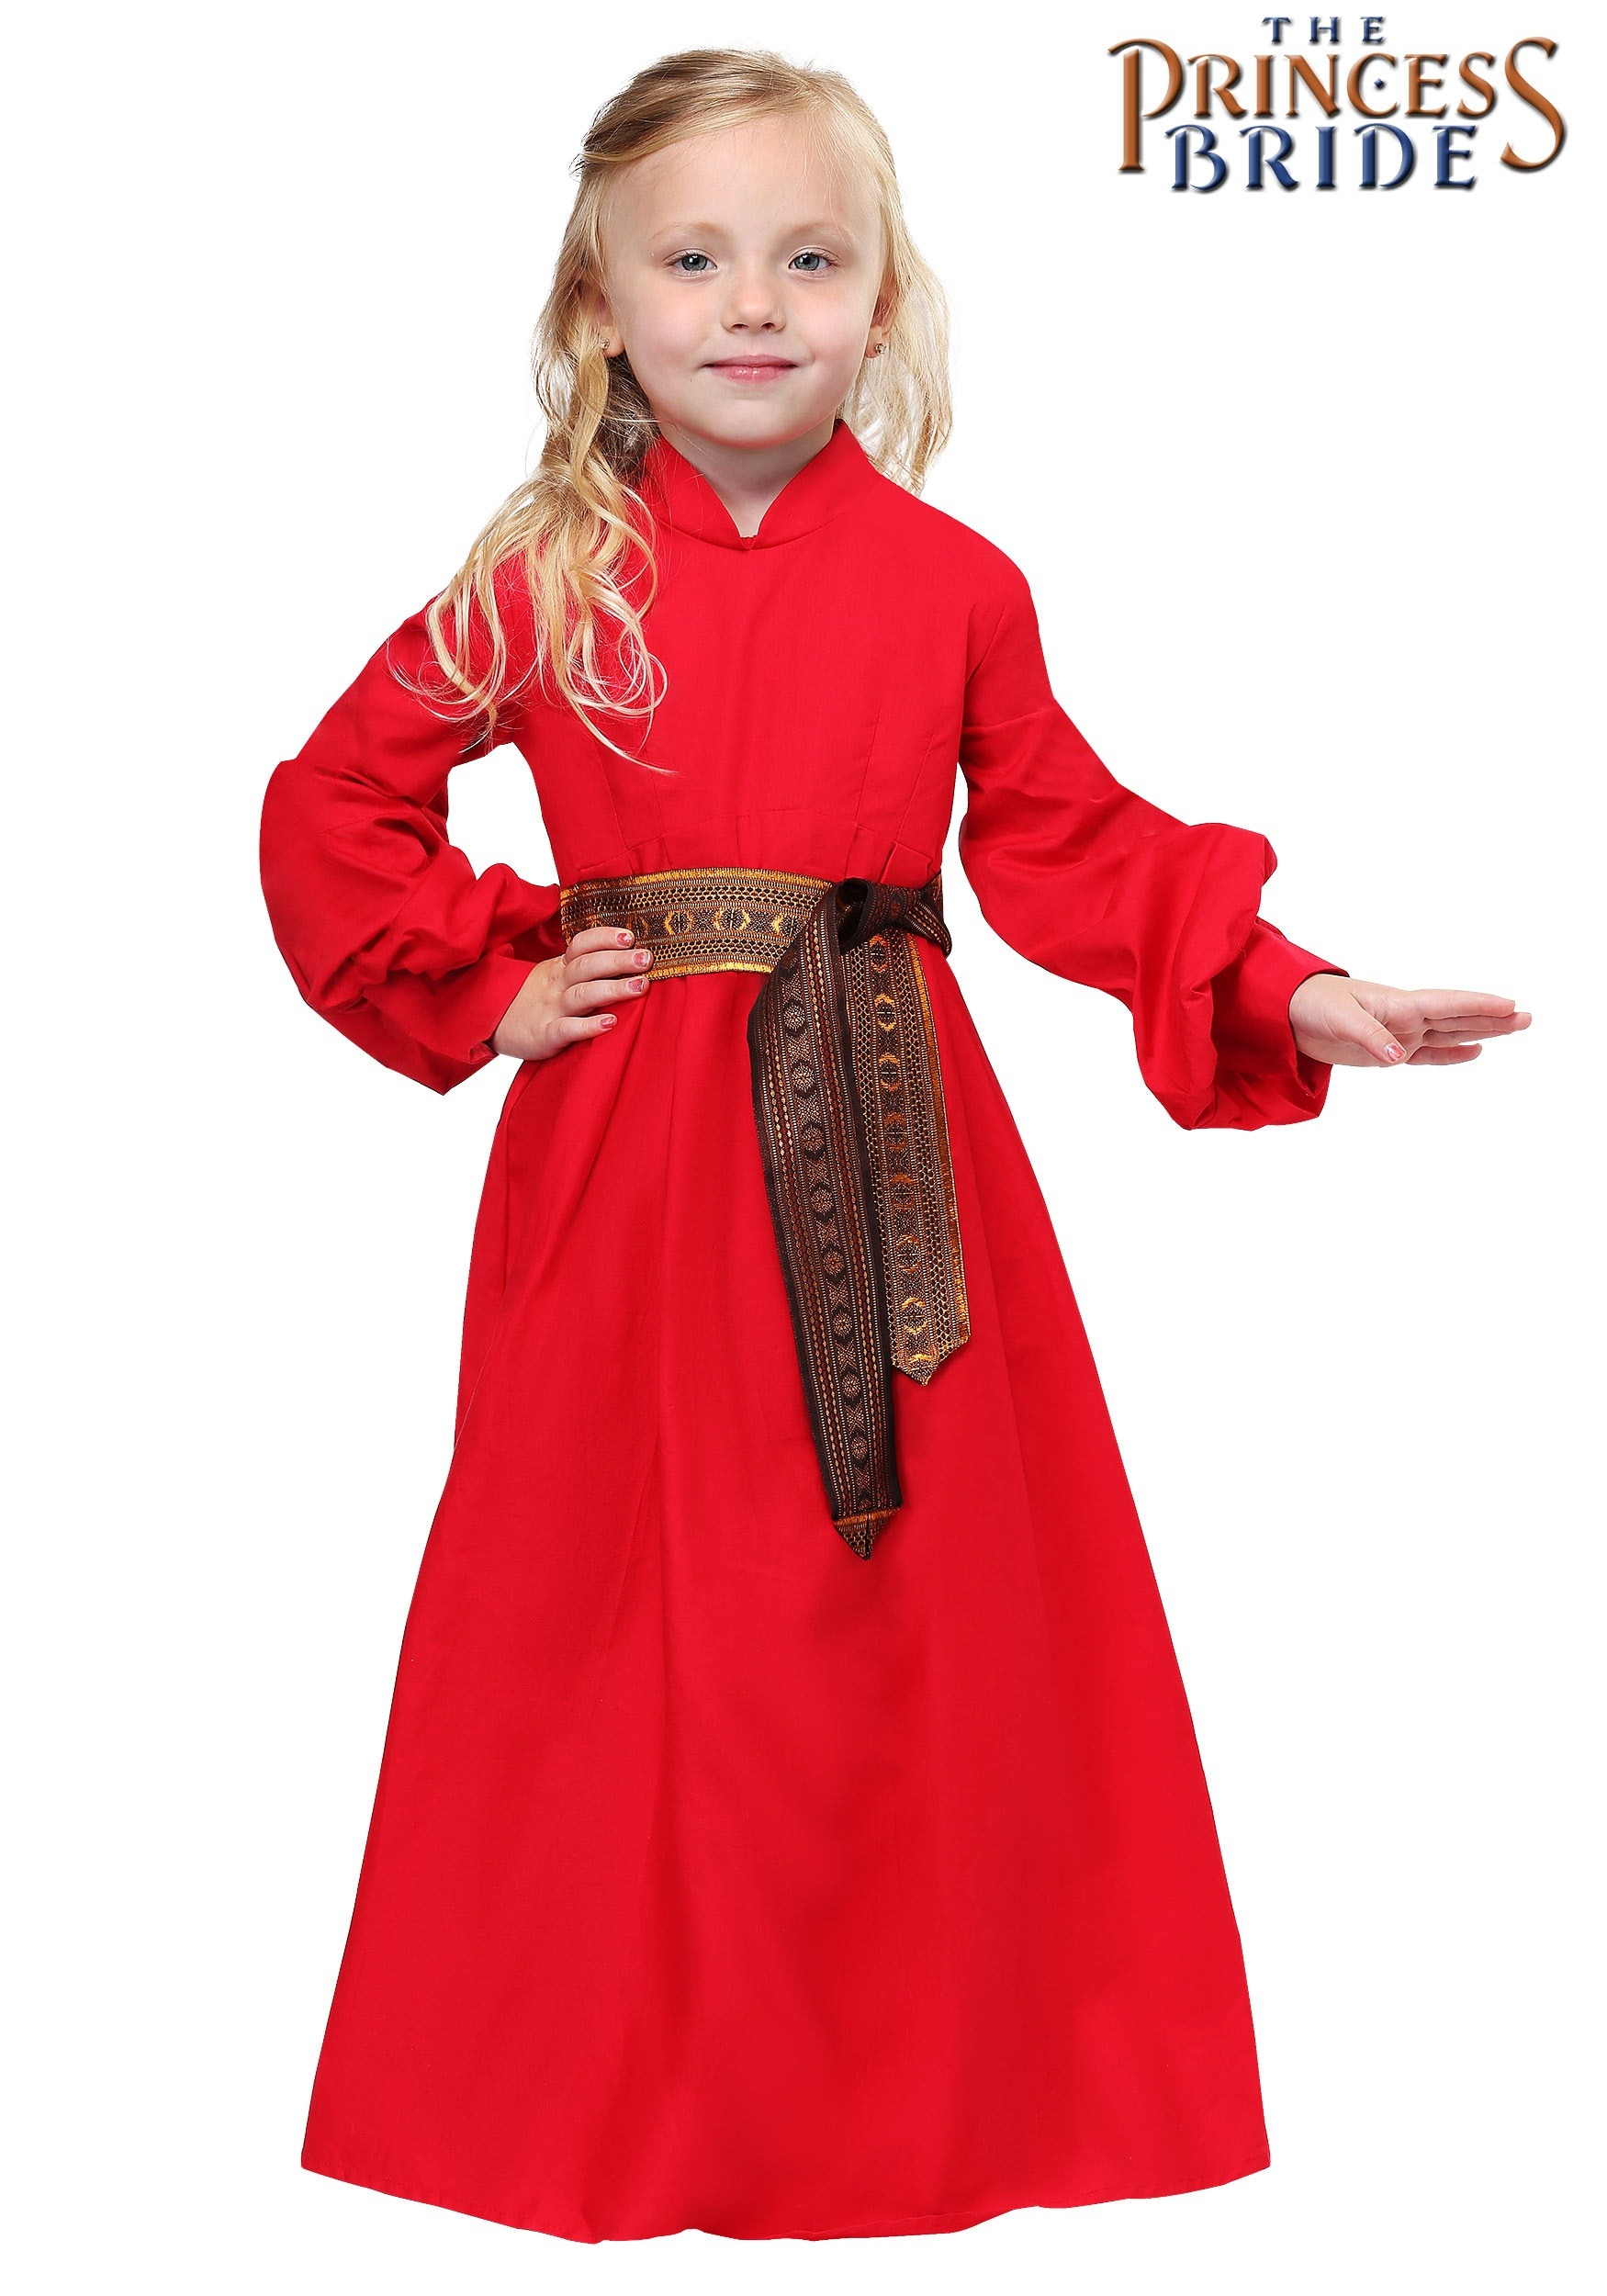 THE PRINCESS BRIDE TODDLER BUTTERCUP PEASANT DRESS red